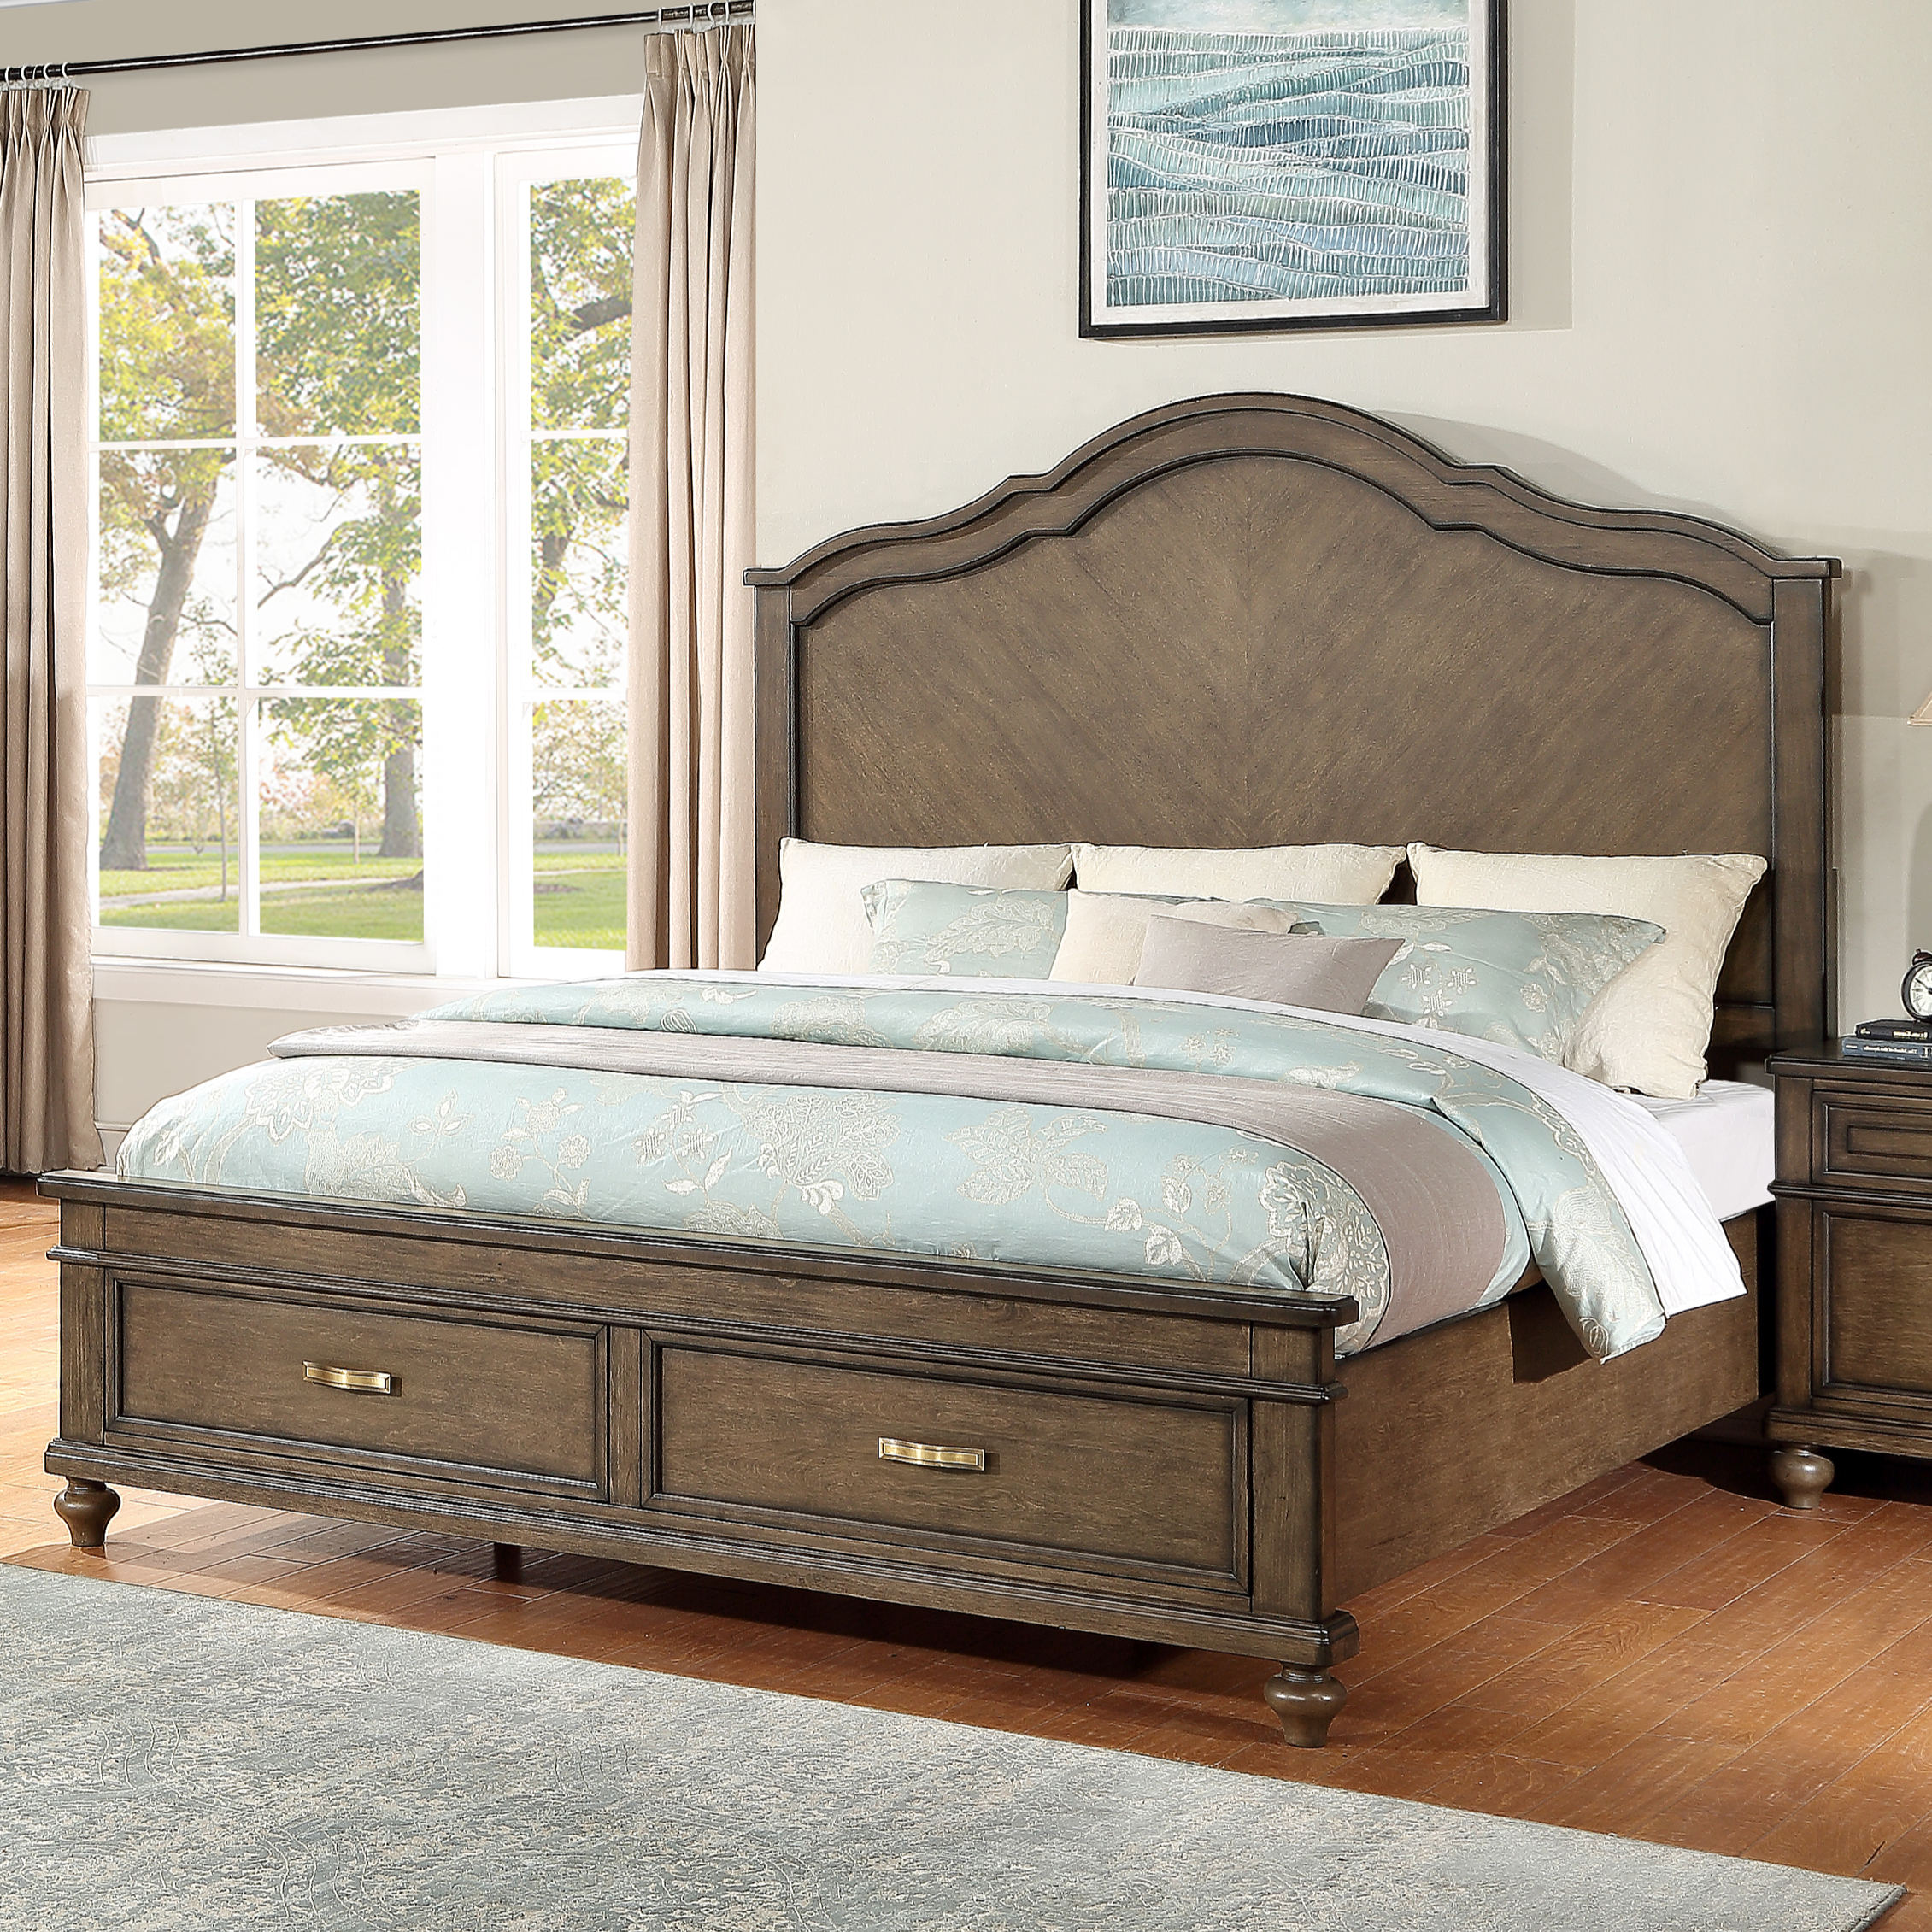 Canterbury King Bed by New Classic at Beds N Stuff